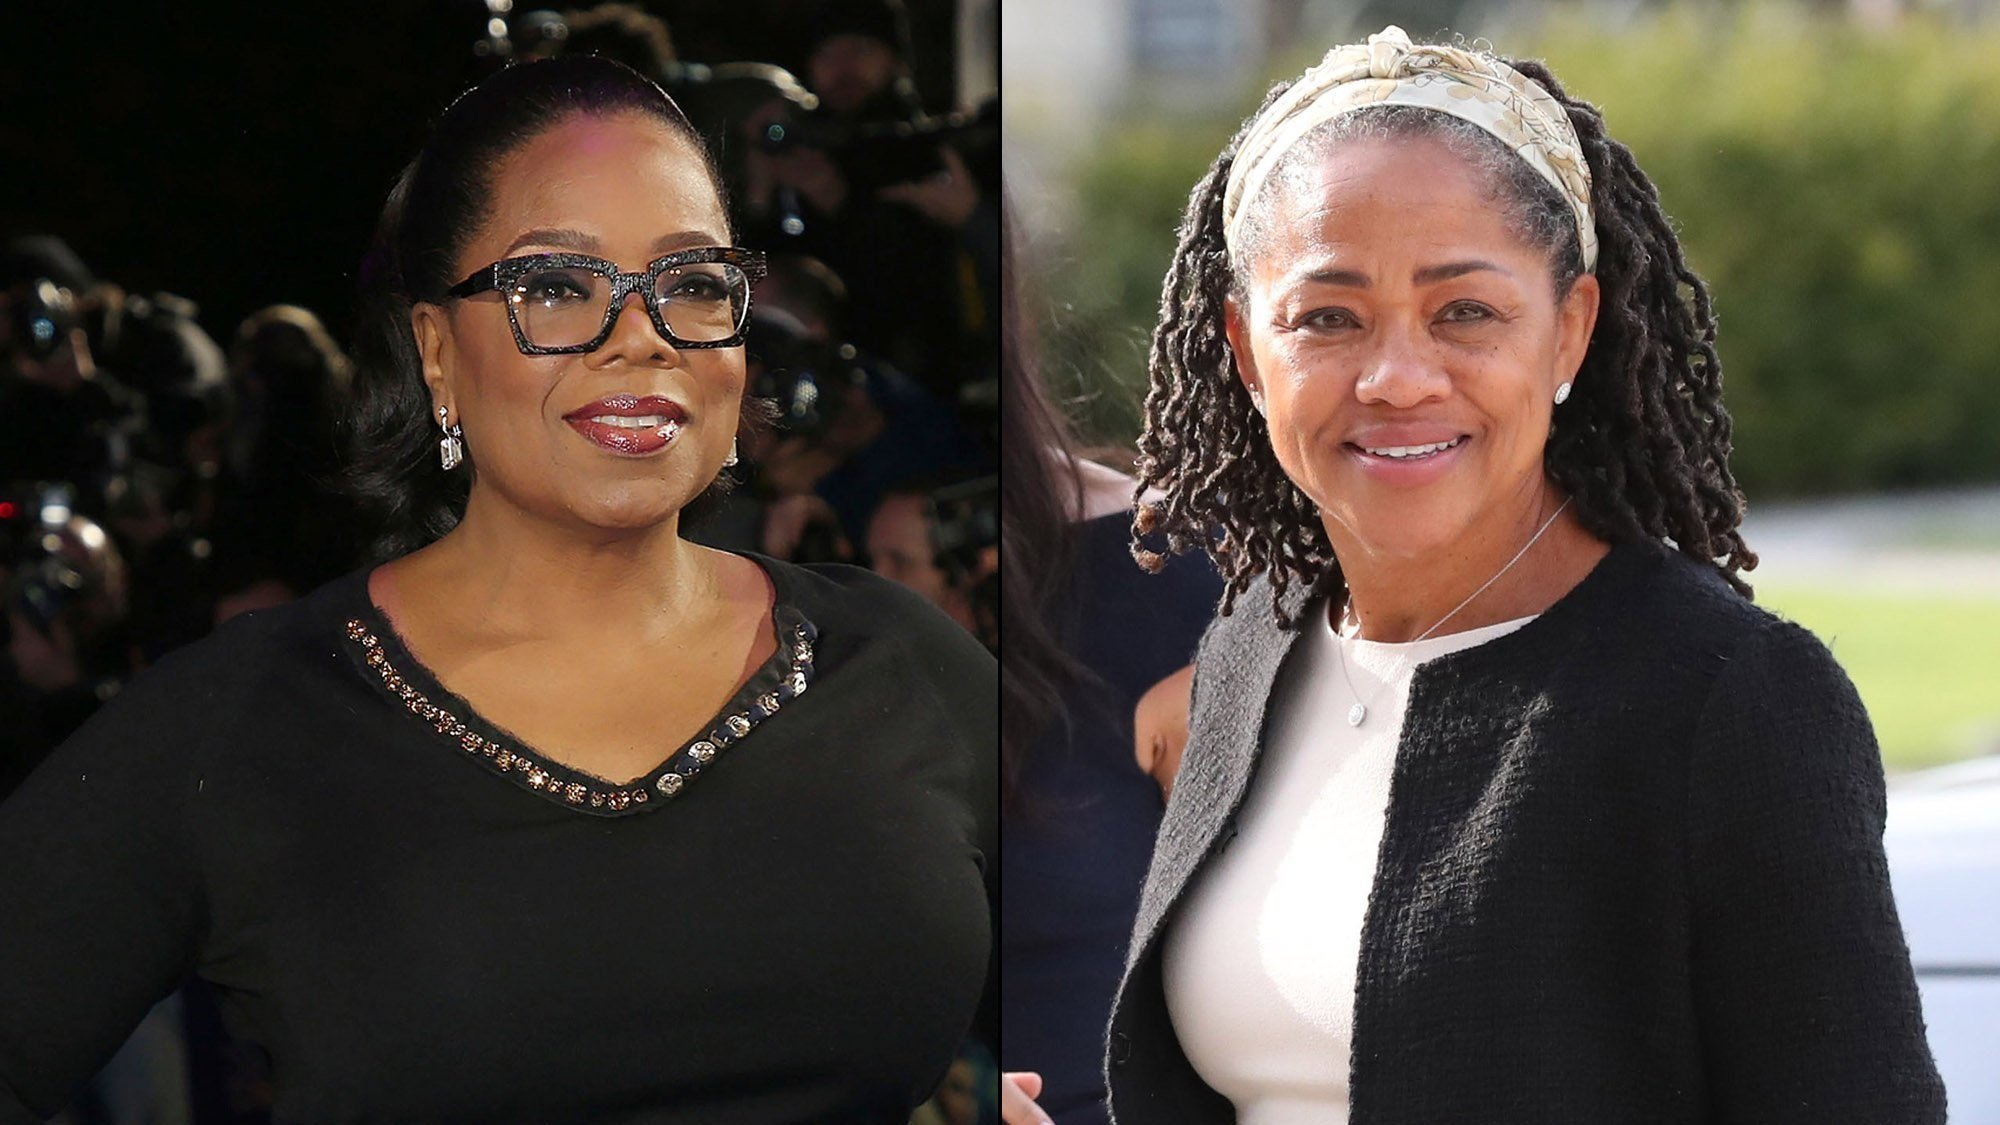 It was reported that Winfrey had lavished gifts on Meghan Markle's mother, Doria Ragland, when the pair spent the afternoon together prior to Markle's wedding to Prince Harry.